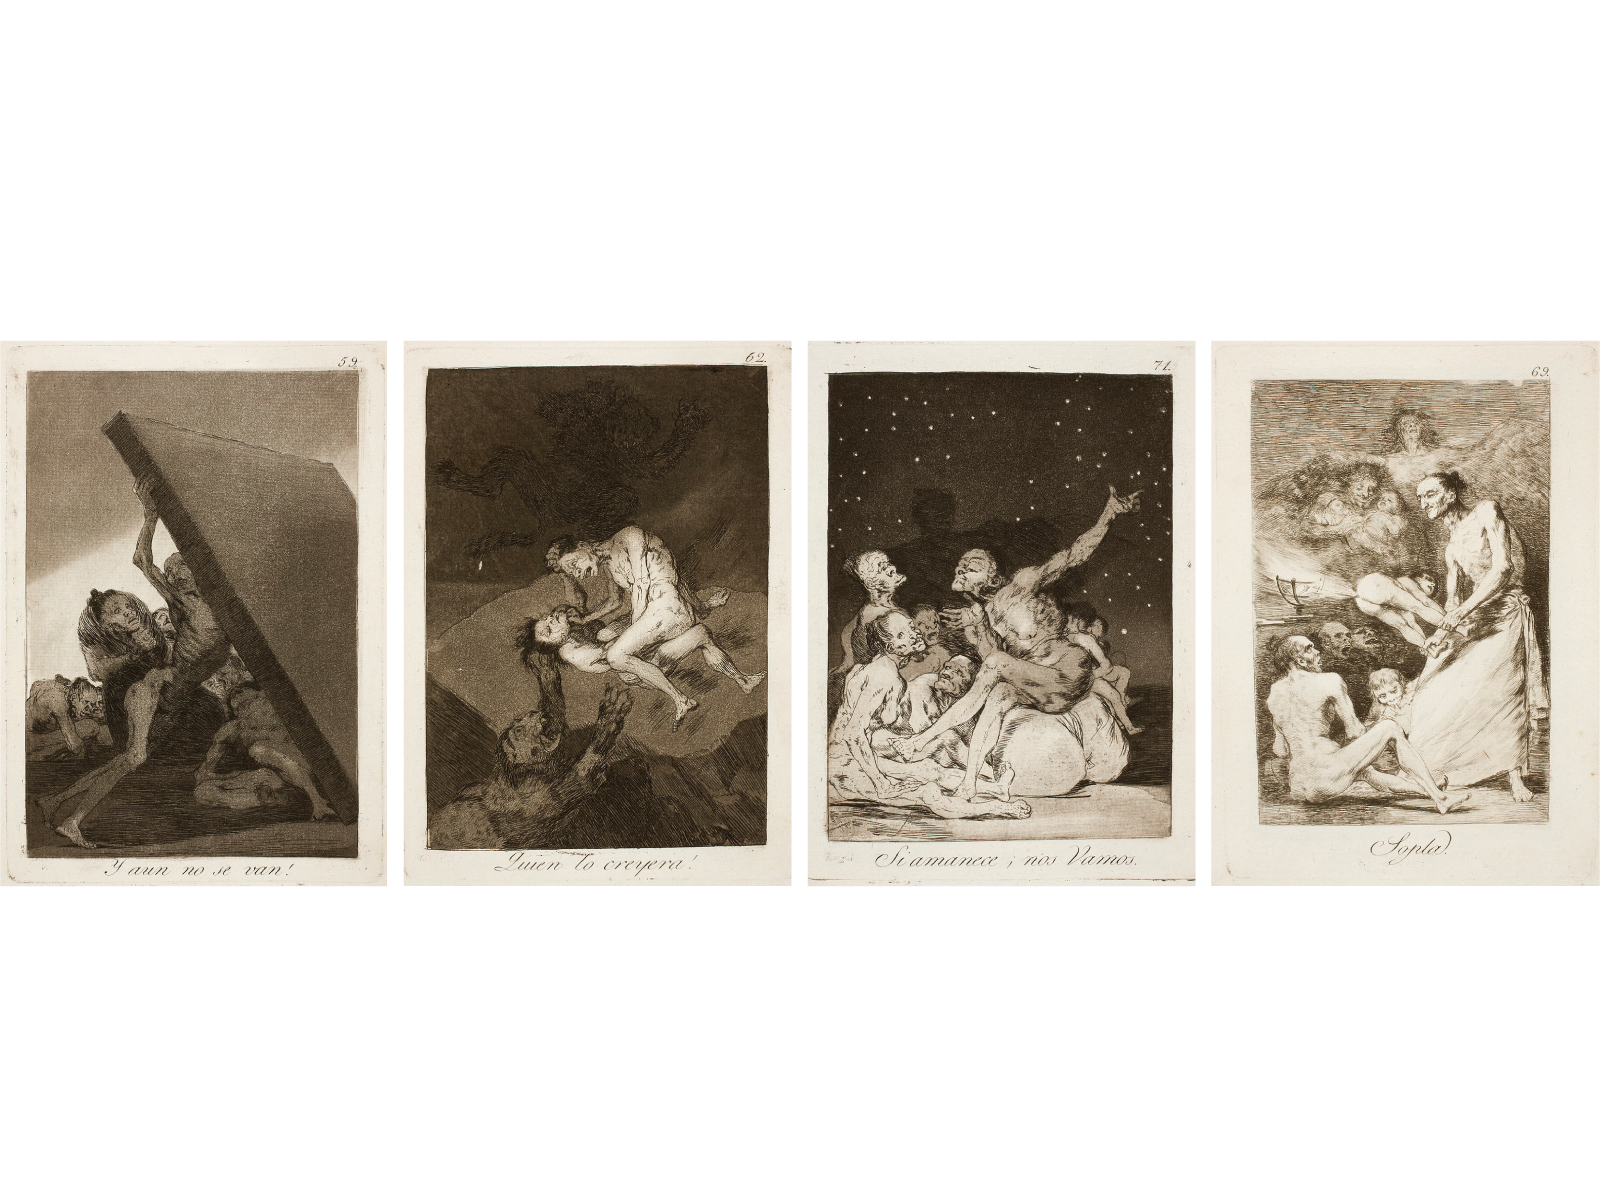 Francisco DE GOYA Y LUCIENTES (1746-1828)59. ¡Y aún no se van!59. And still they don't go!He who is indifferent to the favors of fortune sleeps calmly through all danger.  Nevertheless, danger threatens him and he cannot avoid the misfortunes that will befall him.62. ¡Quién lo creyera!62. Who would believe it!See them fight as to which is the bigger witch.  Who would have believed that they would tear each other to pieces in such an insane fashion?  Friendship is a virtue.  Criminals may be accomplices but never friends. 71. Si amanece; nos vamos71. When day breaks we will be offIf you didn't come, you won't have been missed.69. Sopla69. She blowsSurely, there was a great catch of children yesterday.  The banquet being prepared will be a large one.  Hearty appetite!Aquatint and etching31 x 41 x 3 cm